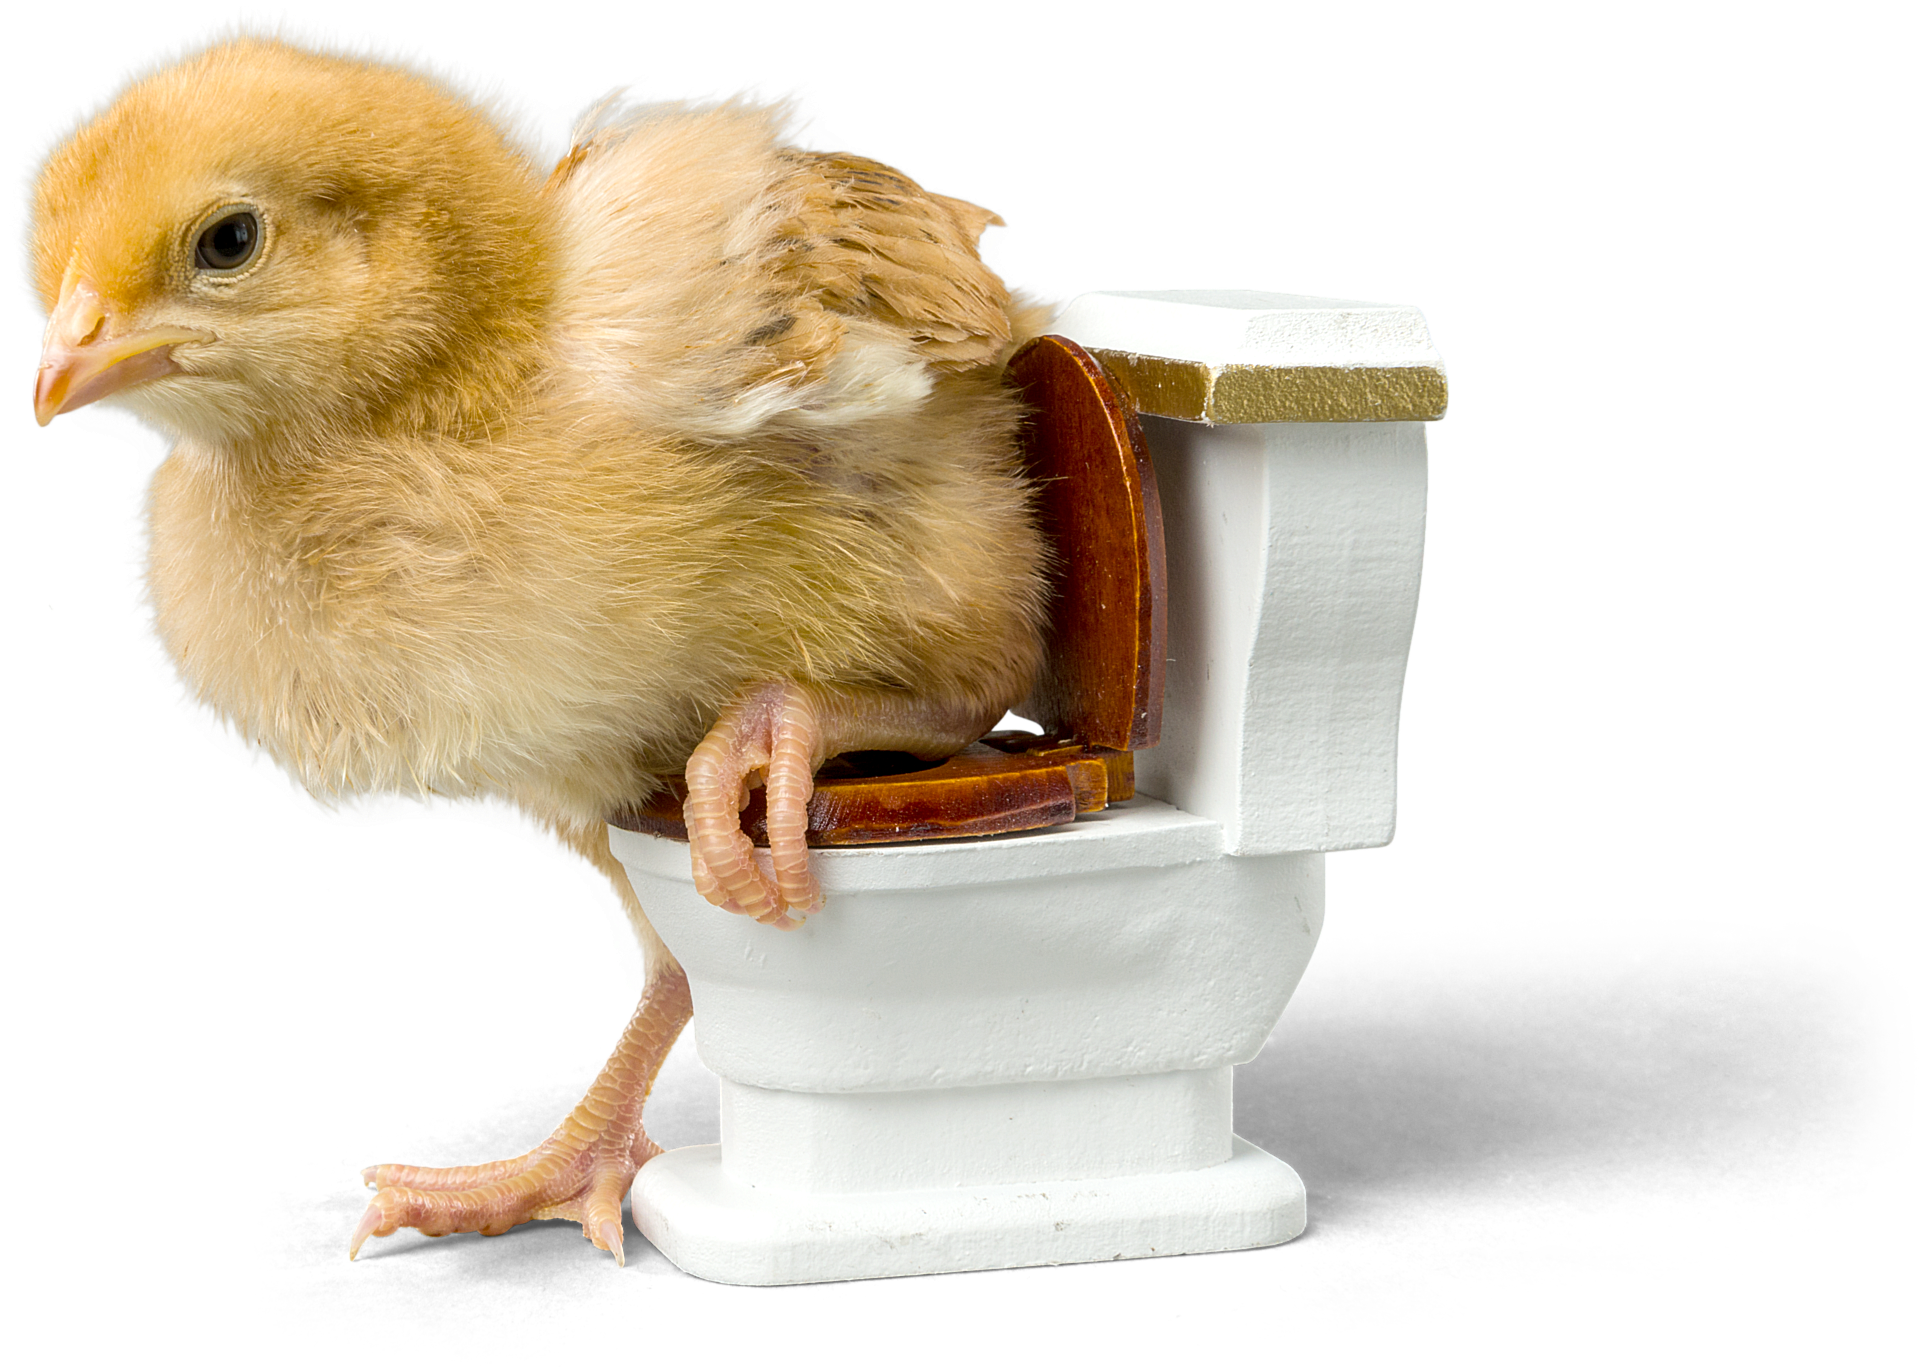 Potty training a cockatiel